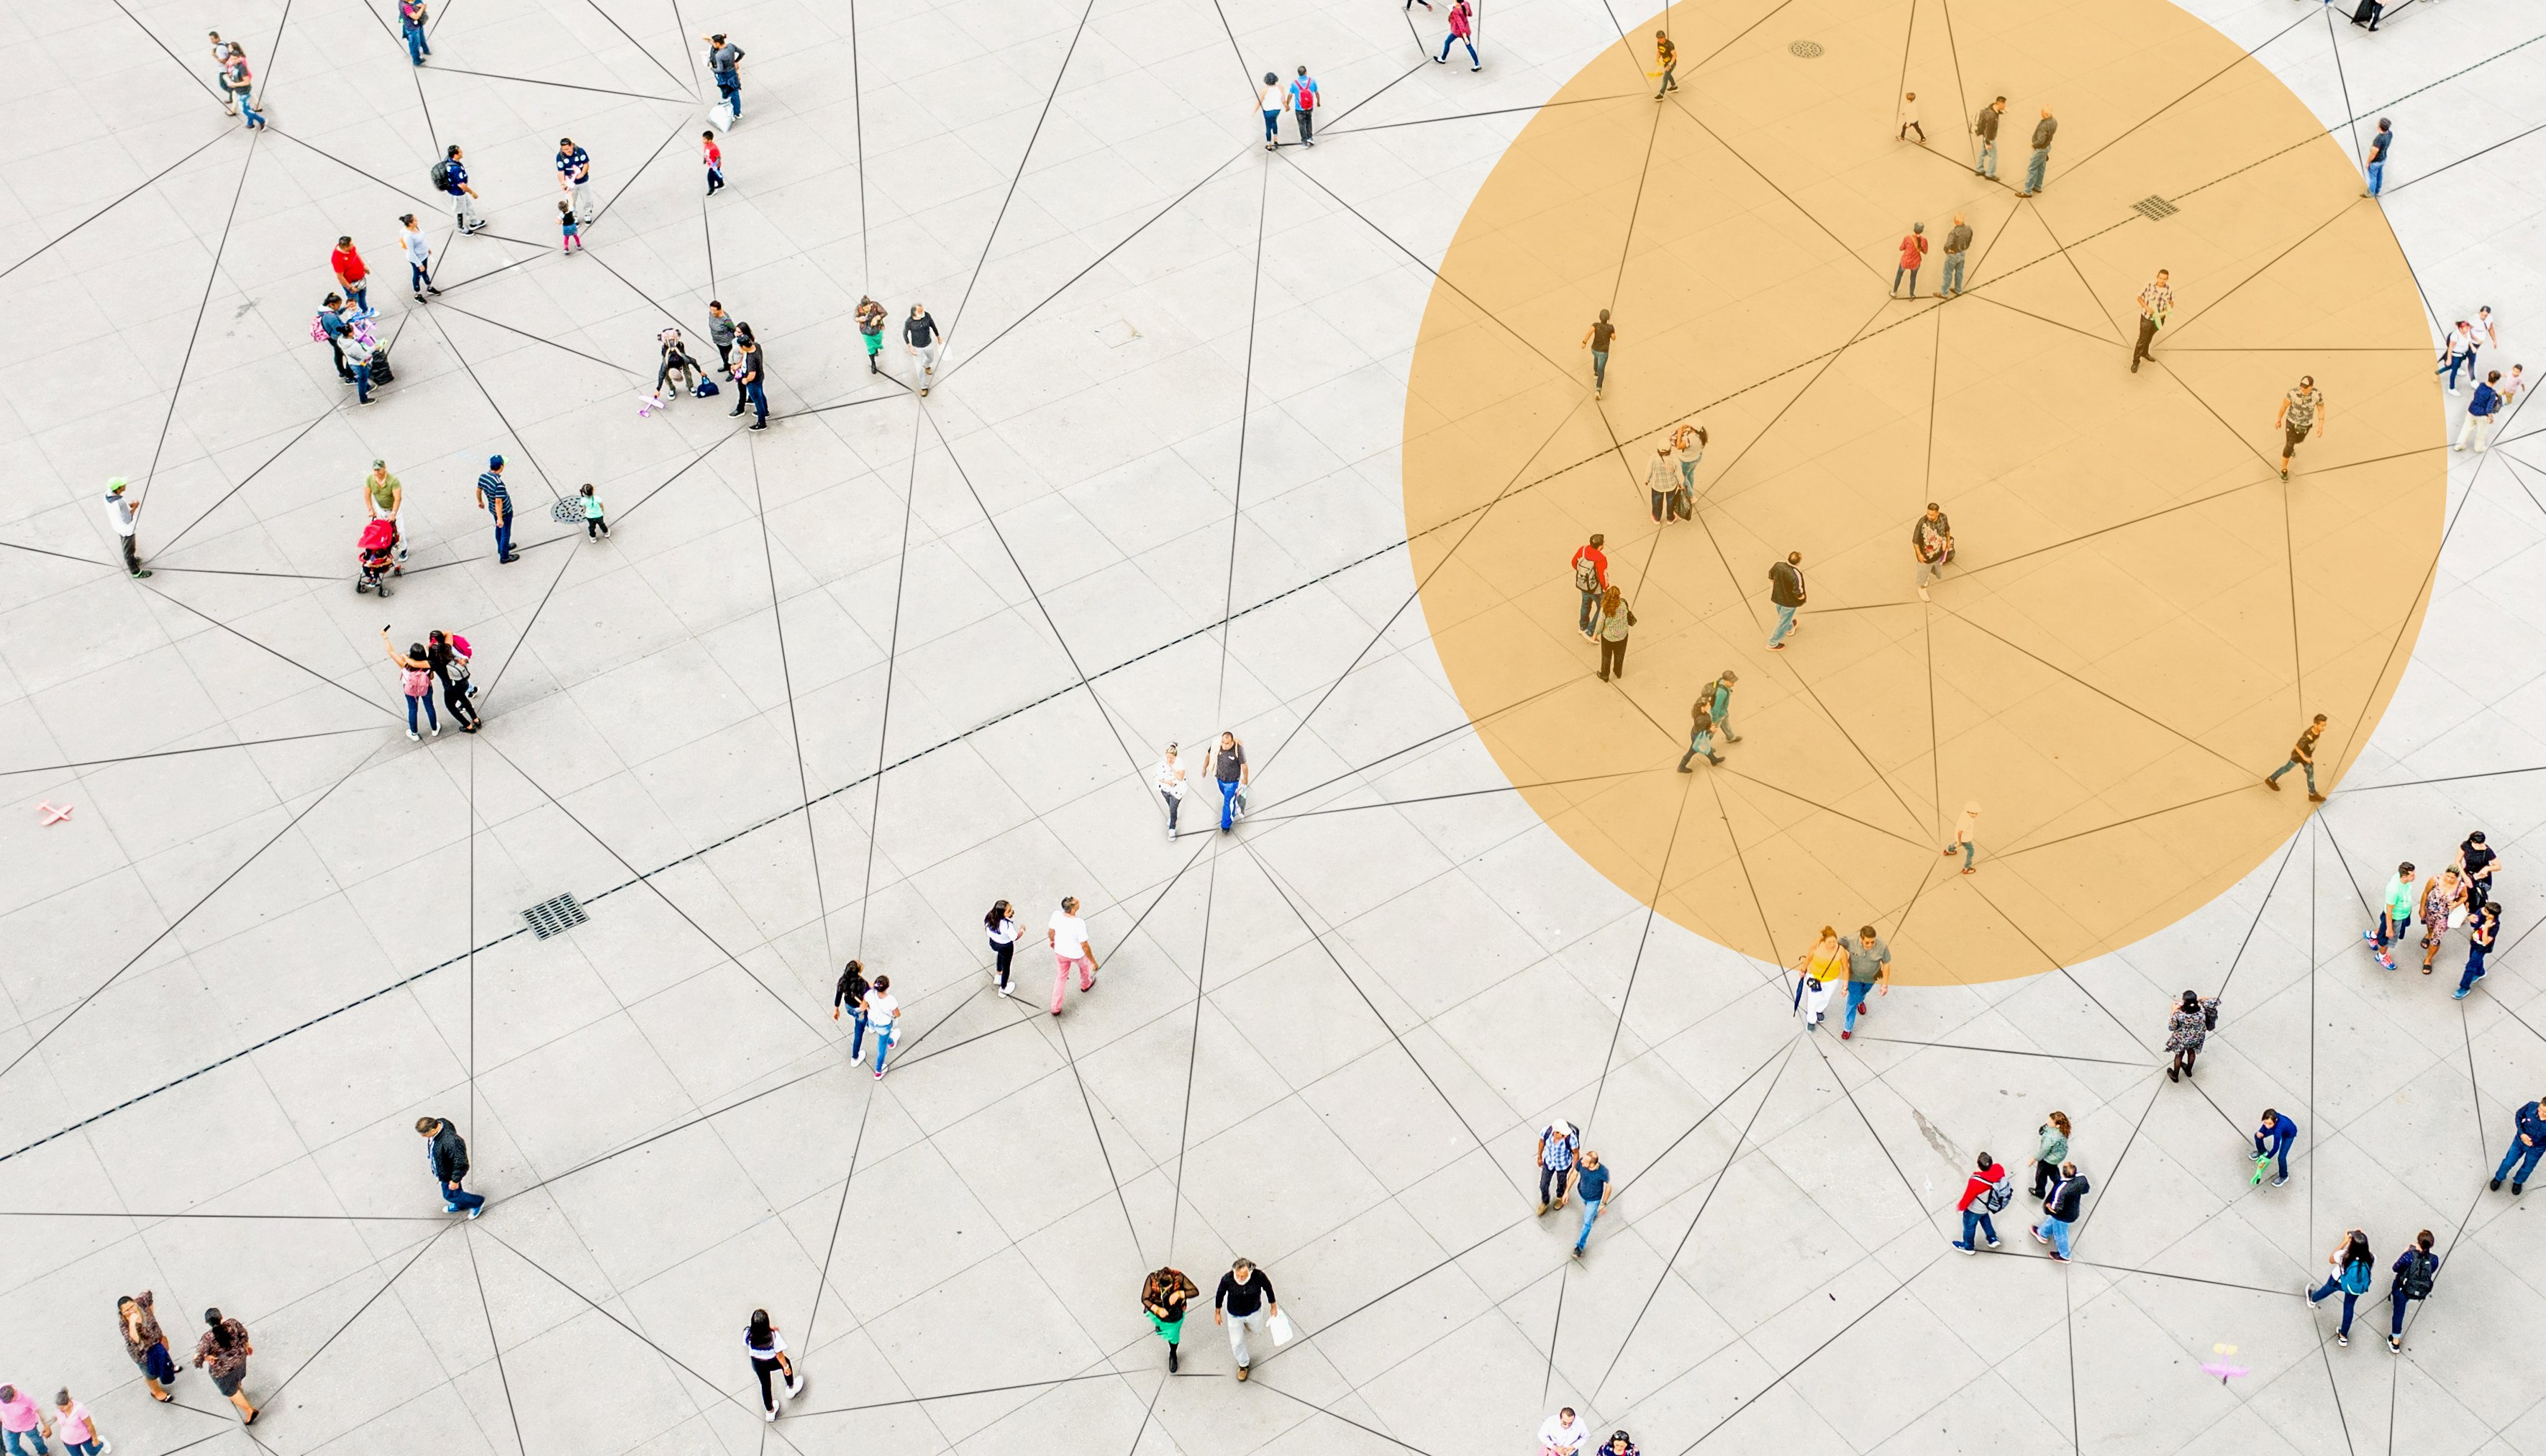 Shows a complex network of people that are interconnected.